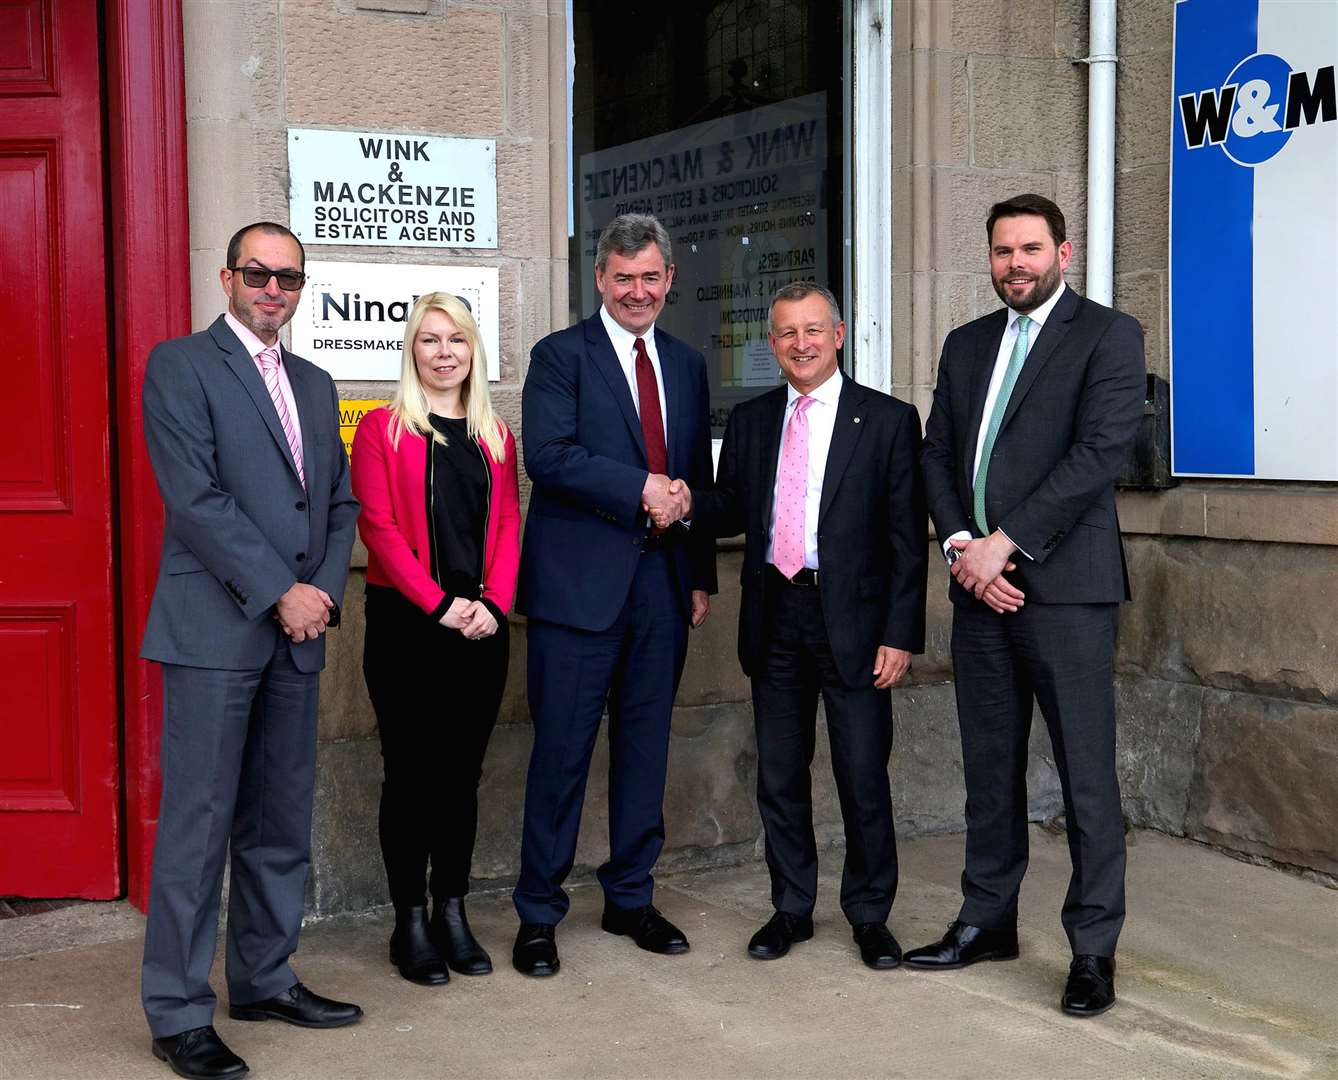 From left, Damian Marinello, Lauren Wright, Professor Lorne Crerar CBE, Ian Davidson and Chris Kerr.